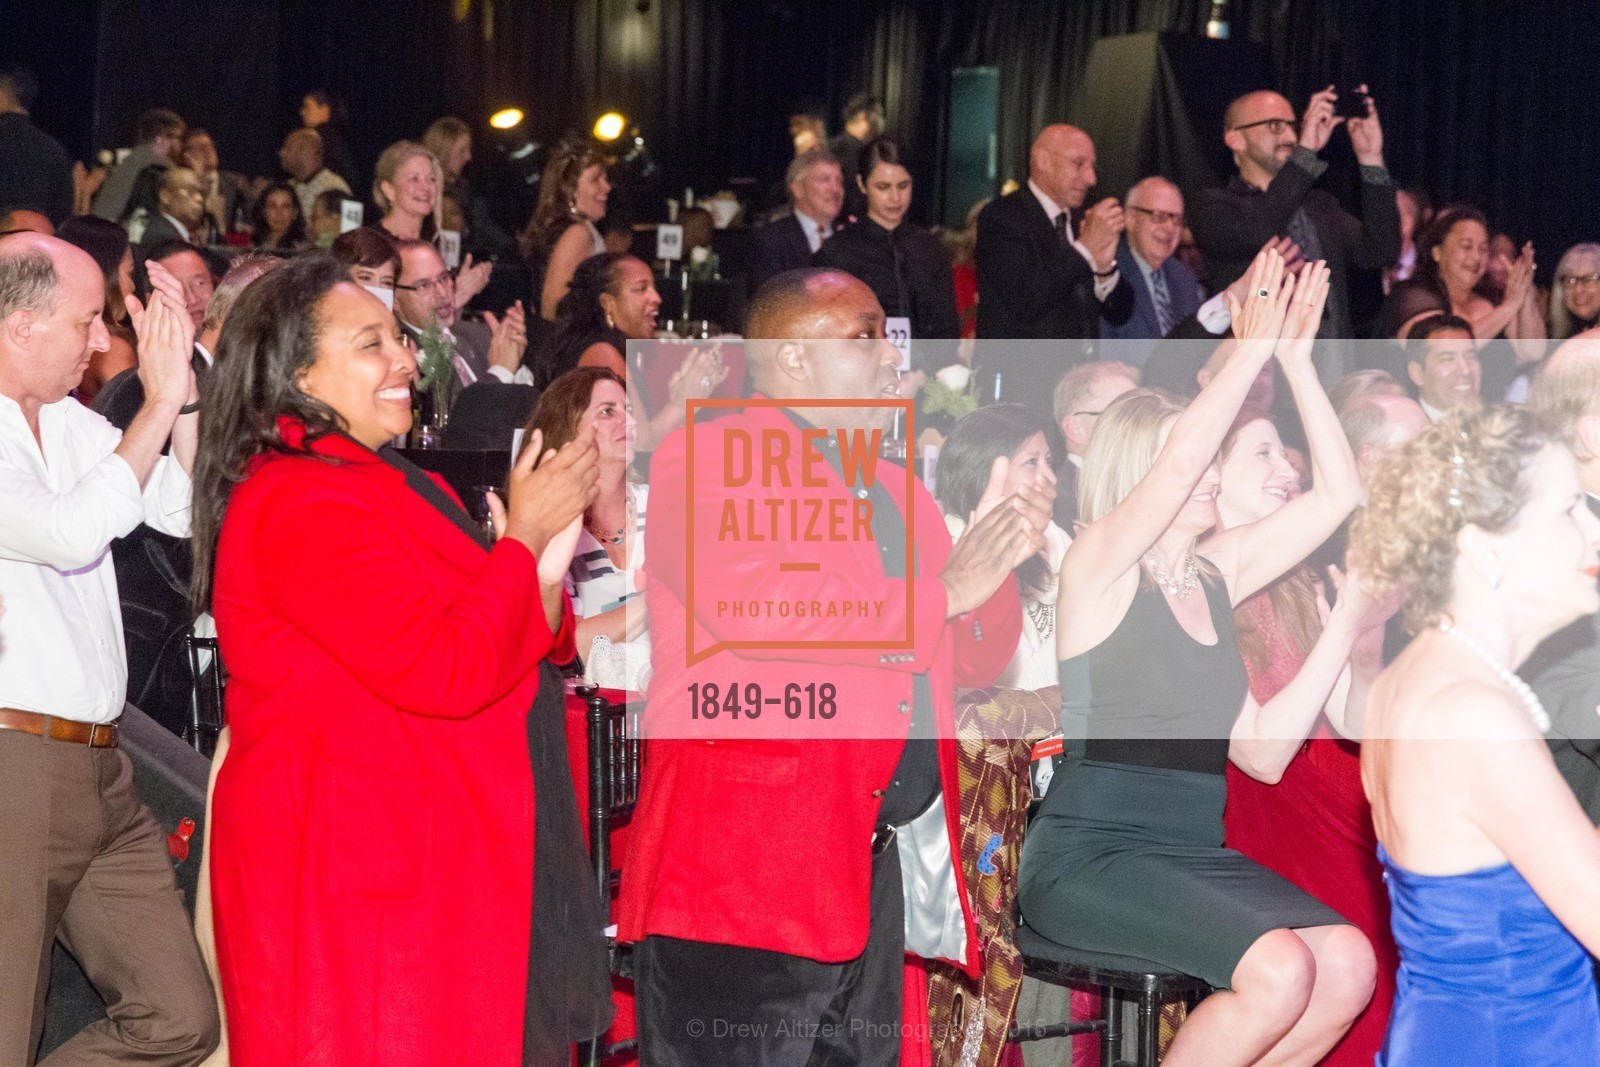 Extras, GLIDE's Annual Holiday Jam: Love Matters, December 3rd, 2015, Photo,Drew Altizer, Drew Altizer Photography, full-service agency, private events, San Francisco photographer, photographer california